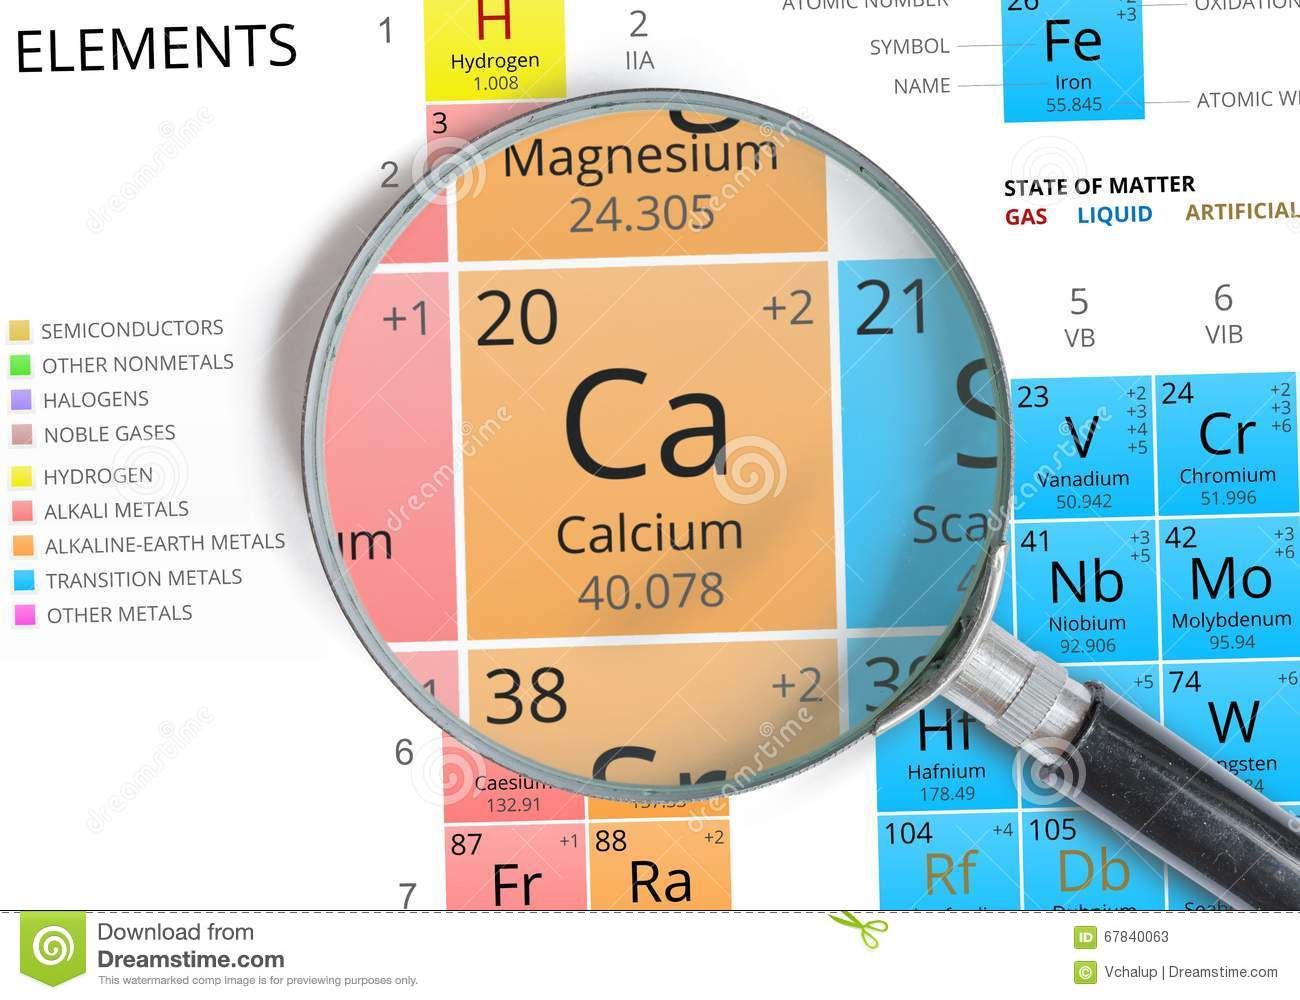 Calcium ca chemical element periodic table stock illustration calcium symbol ca element of the periodic table zoomed stock photos biocorpaavc